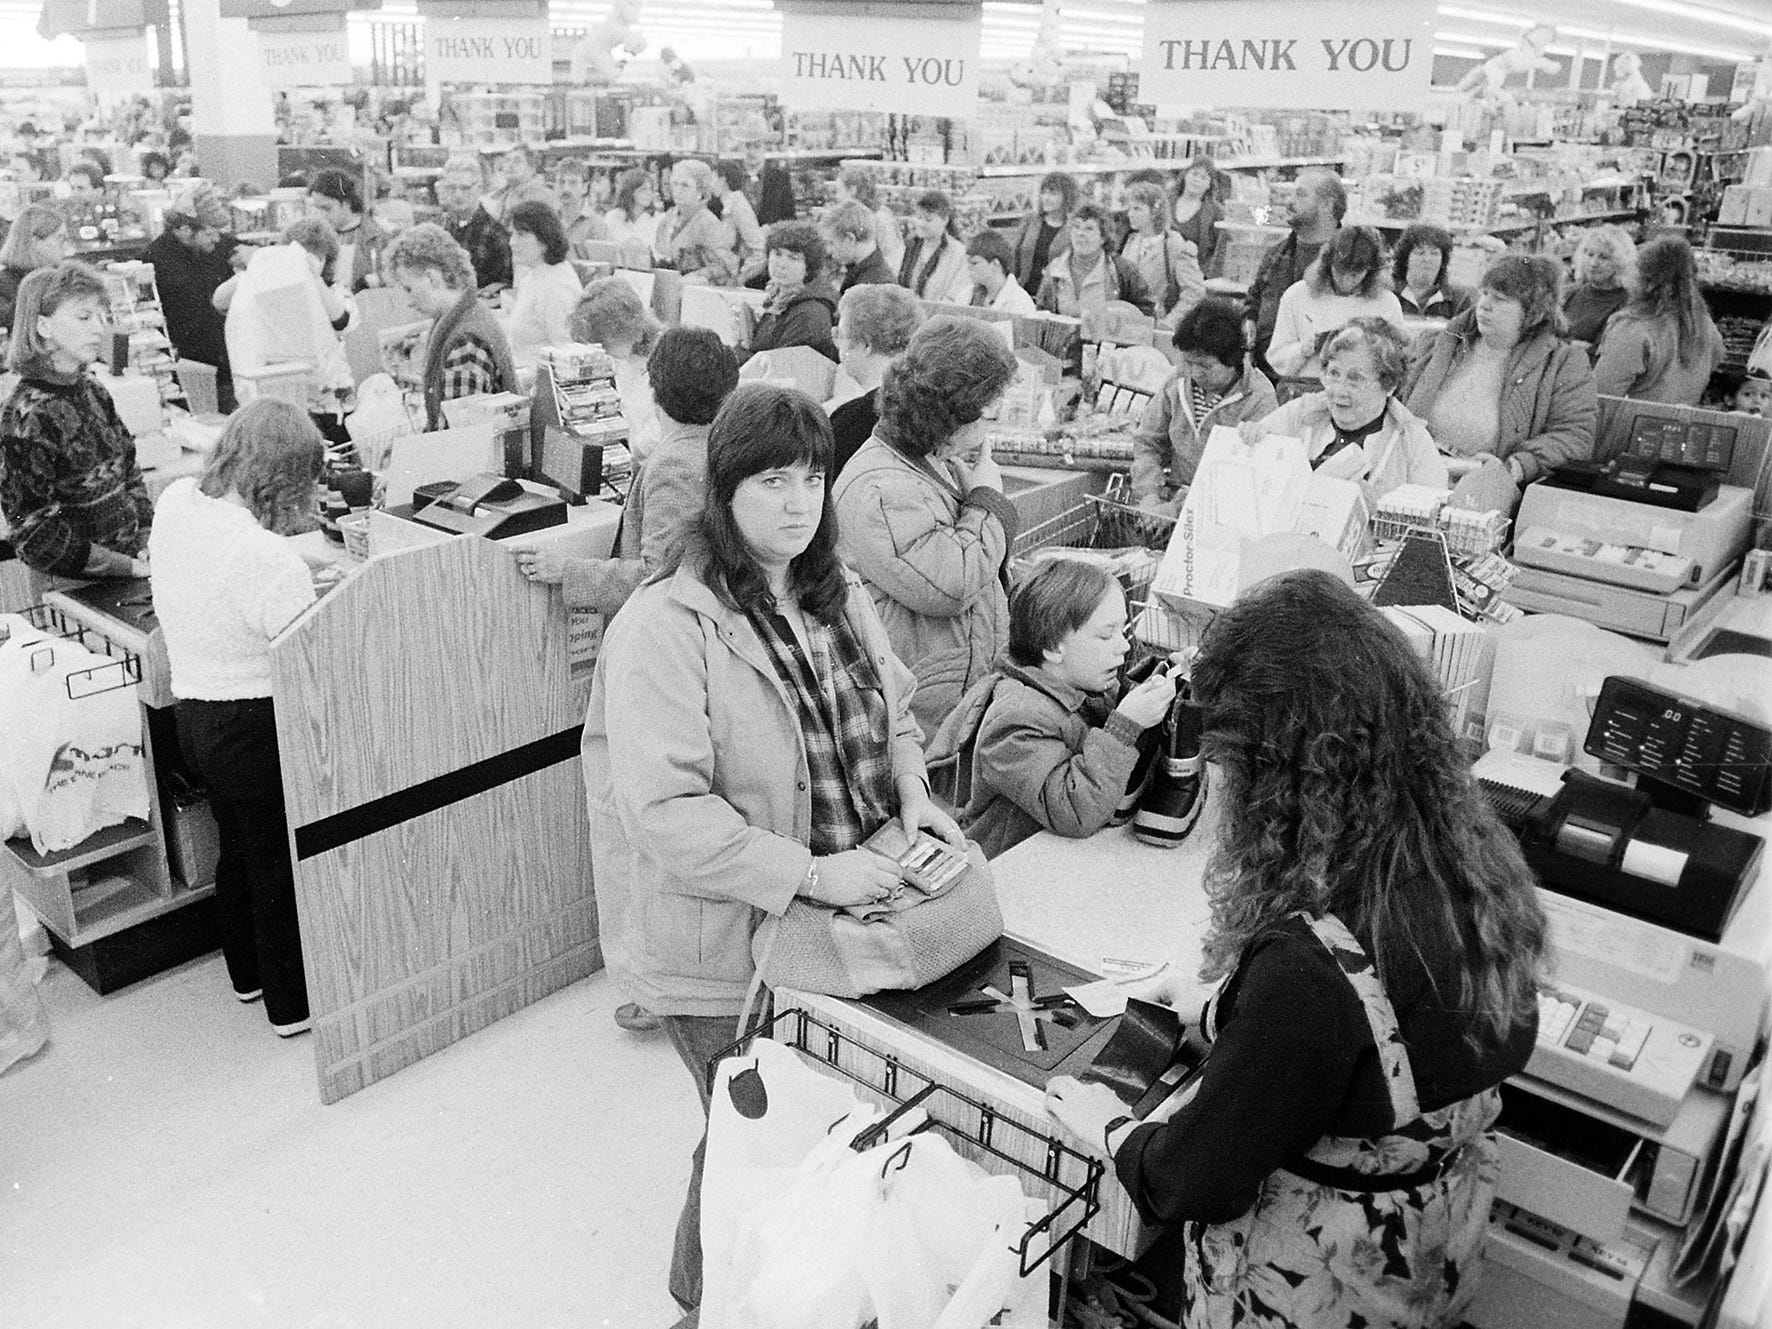 11/26/86